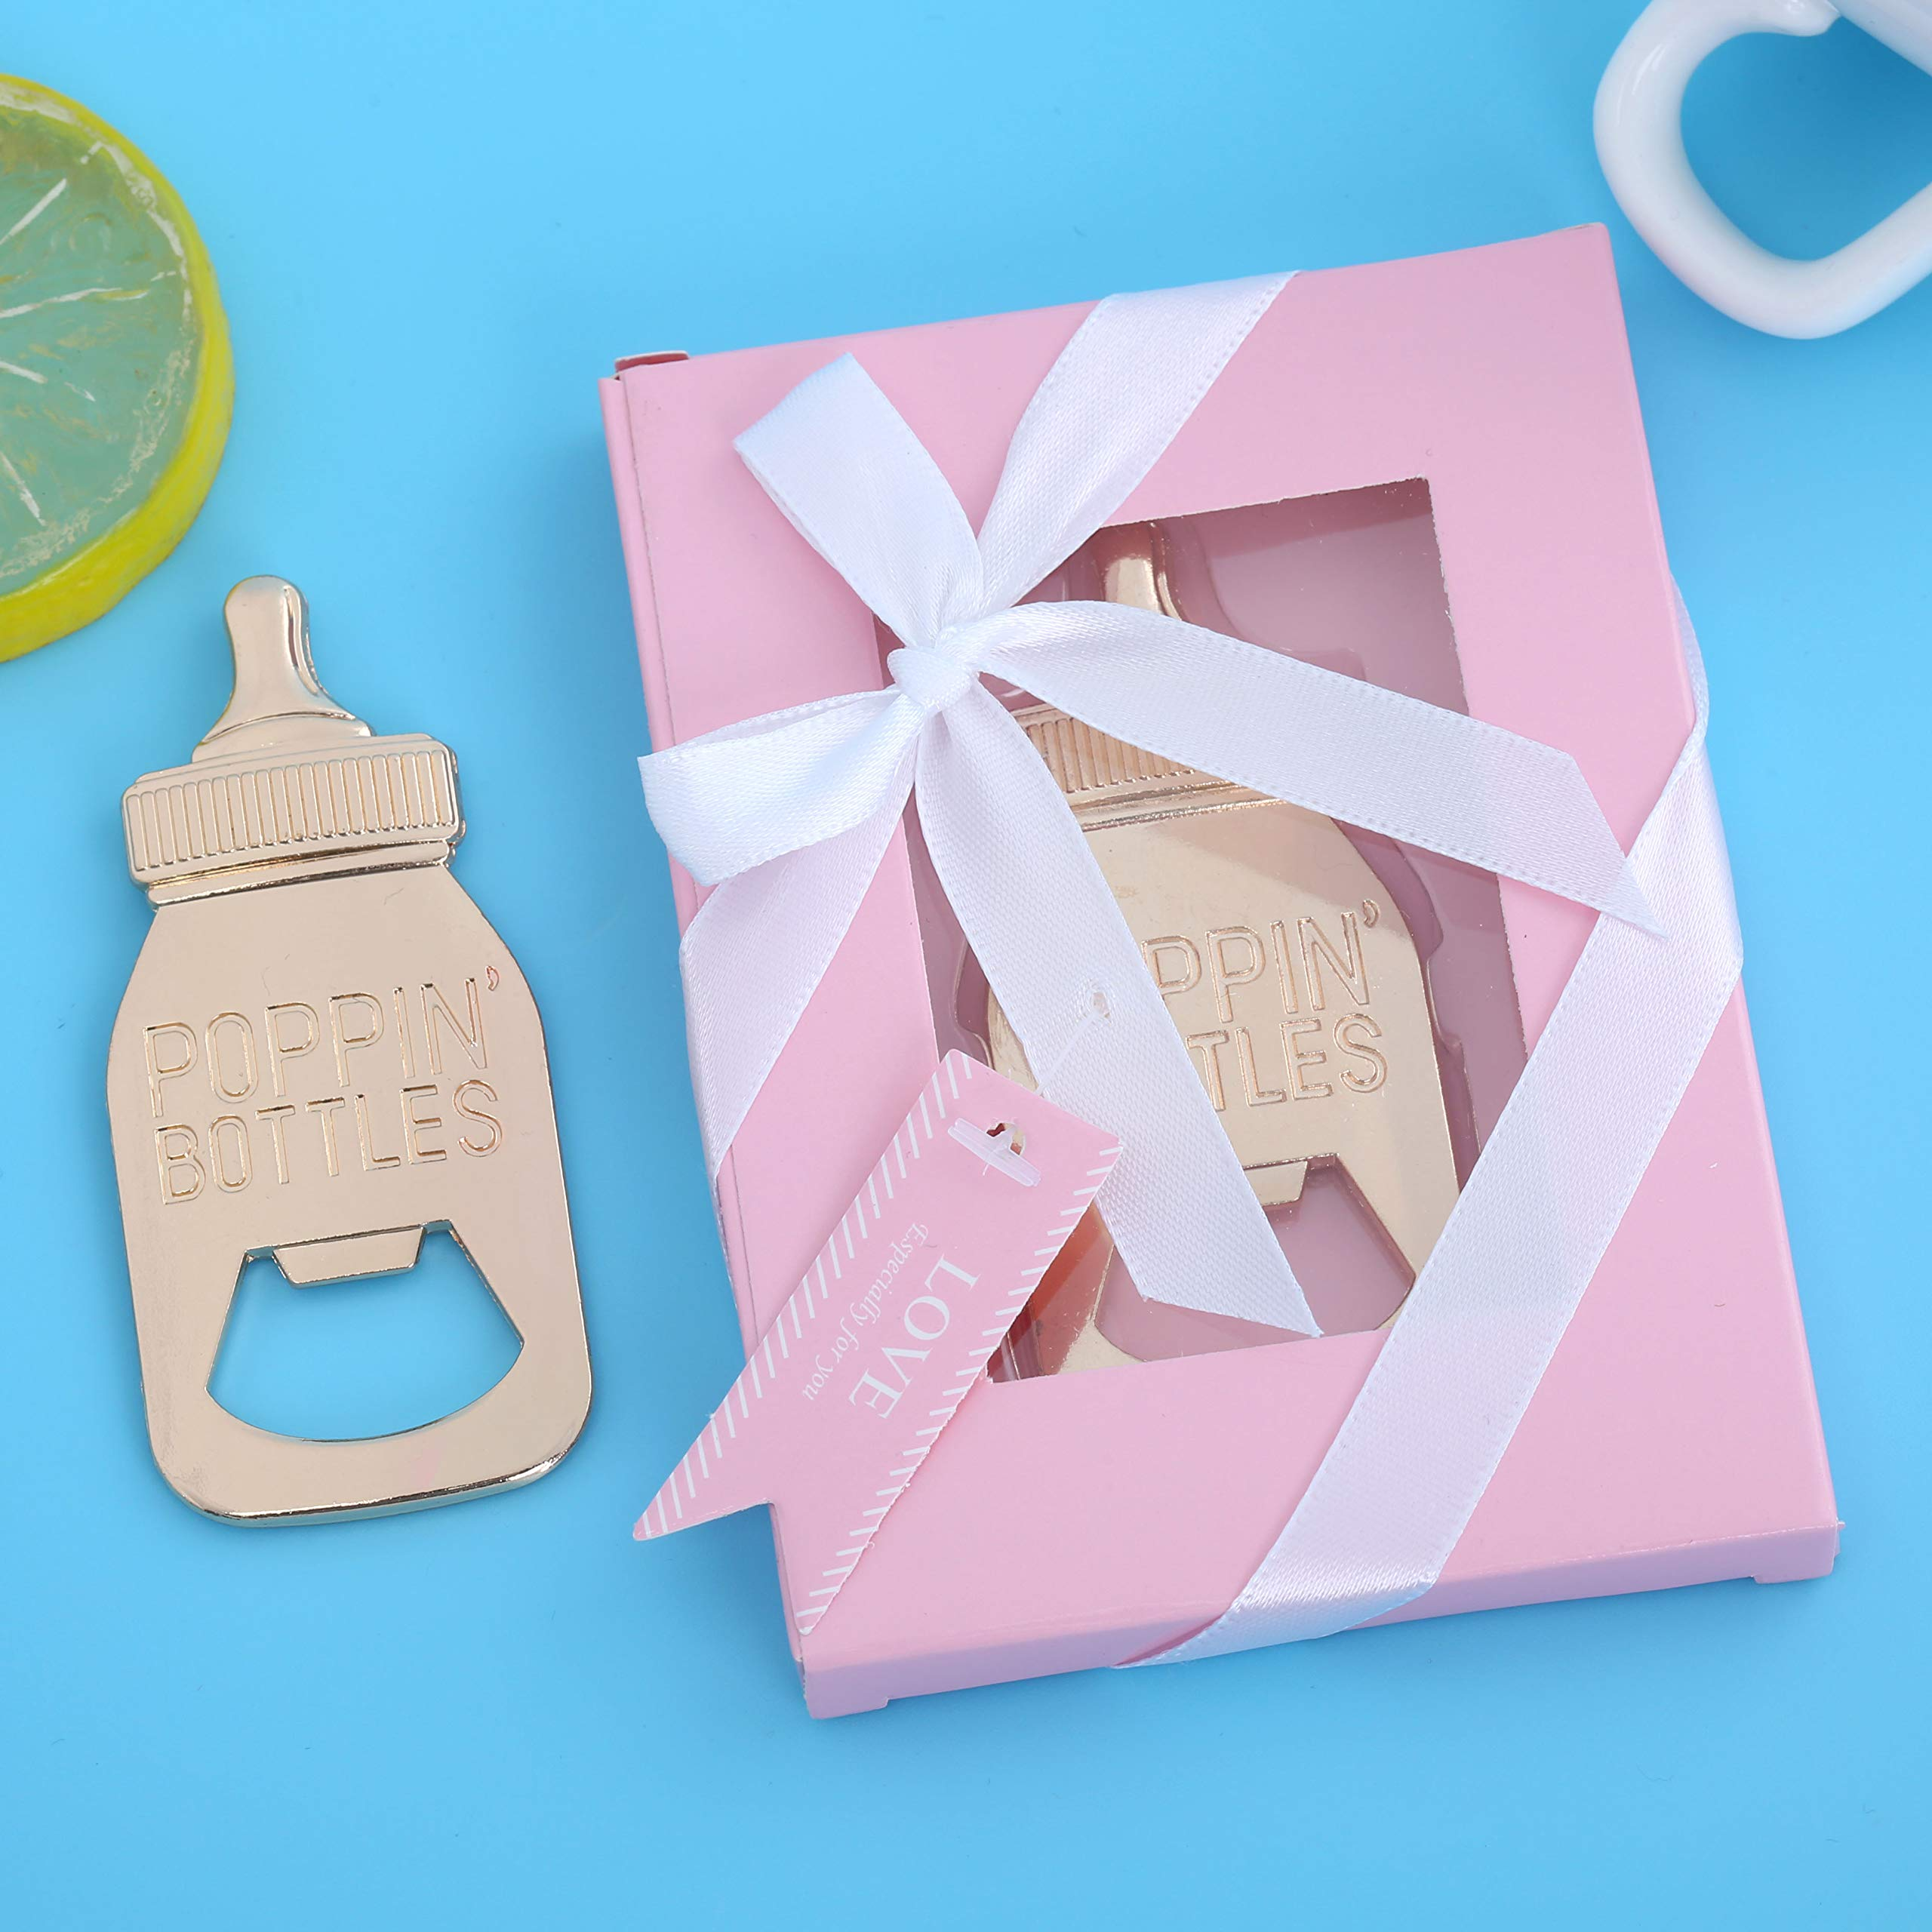 Pack of 24 Baby Shower Return Gifts for Guest Supplies Poppin Baby Bottle Shaped Bottle Opener Wedding Party Souvenirs Decorations with Blue Exquisite Packaging by WeddParty (Baby Bottle Pink 24pcs) by WeddPtyFr